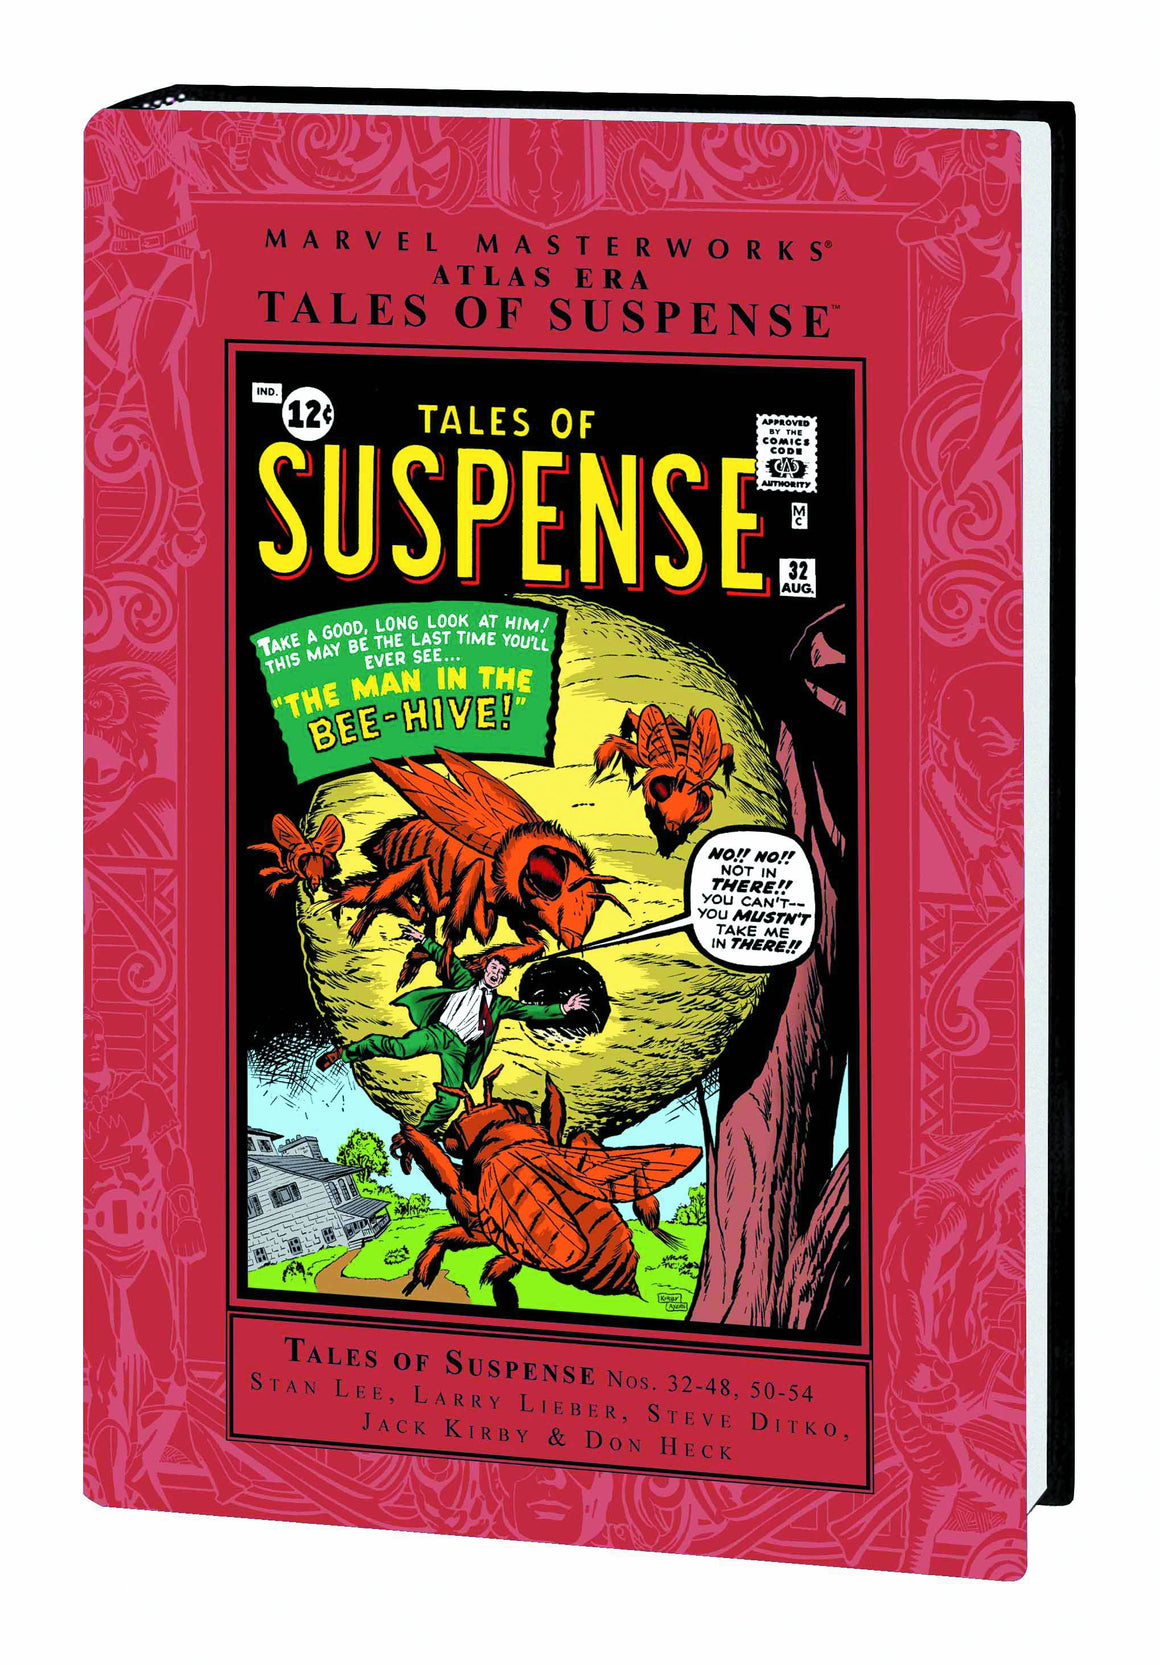 MMW ATLAS ERA TALES OF SUSPENSE HC VOL 04